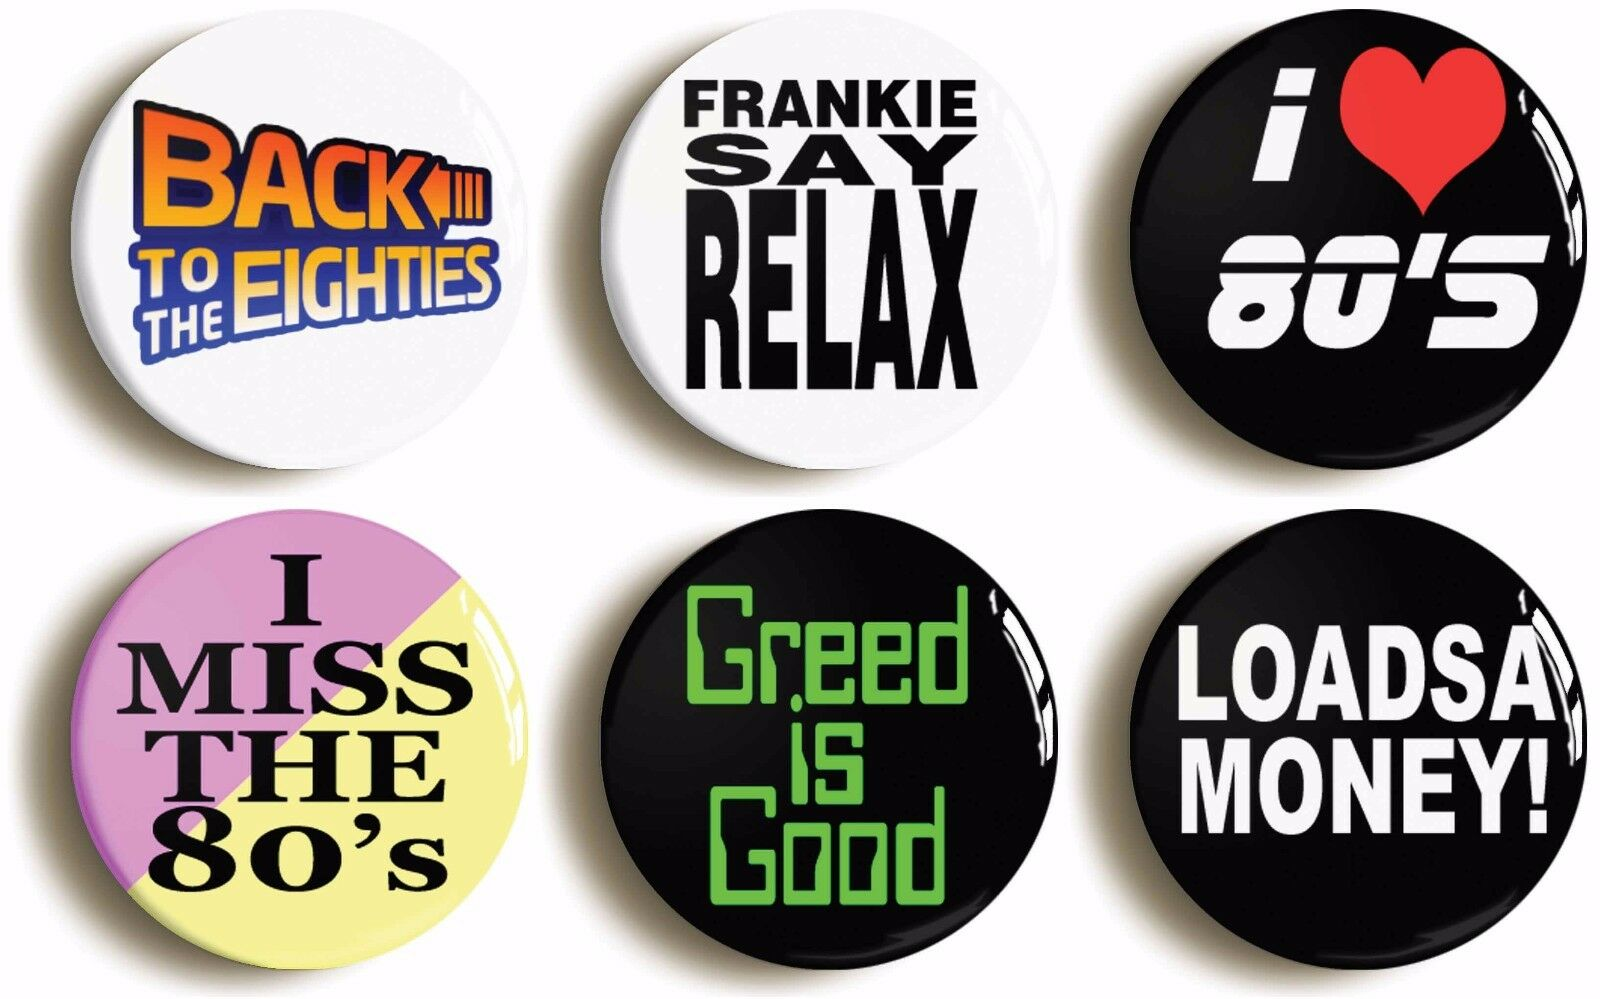 6 x eighties fancy dress badges buttons pins (1inch/25mm diameter) retro 1980s